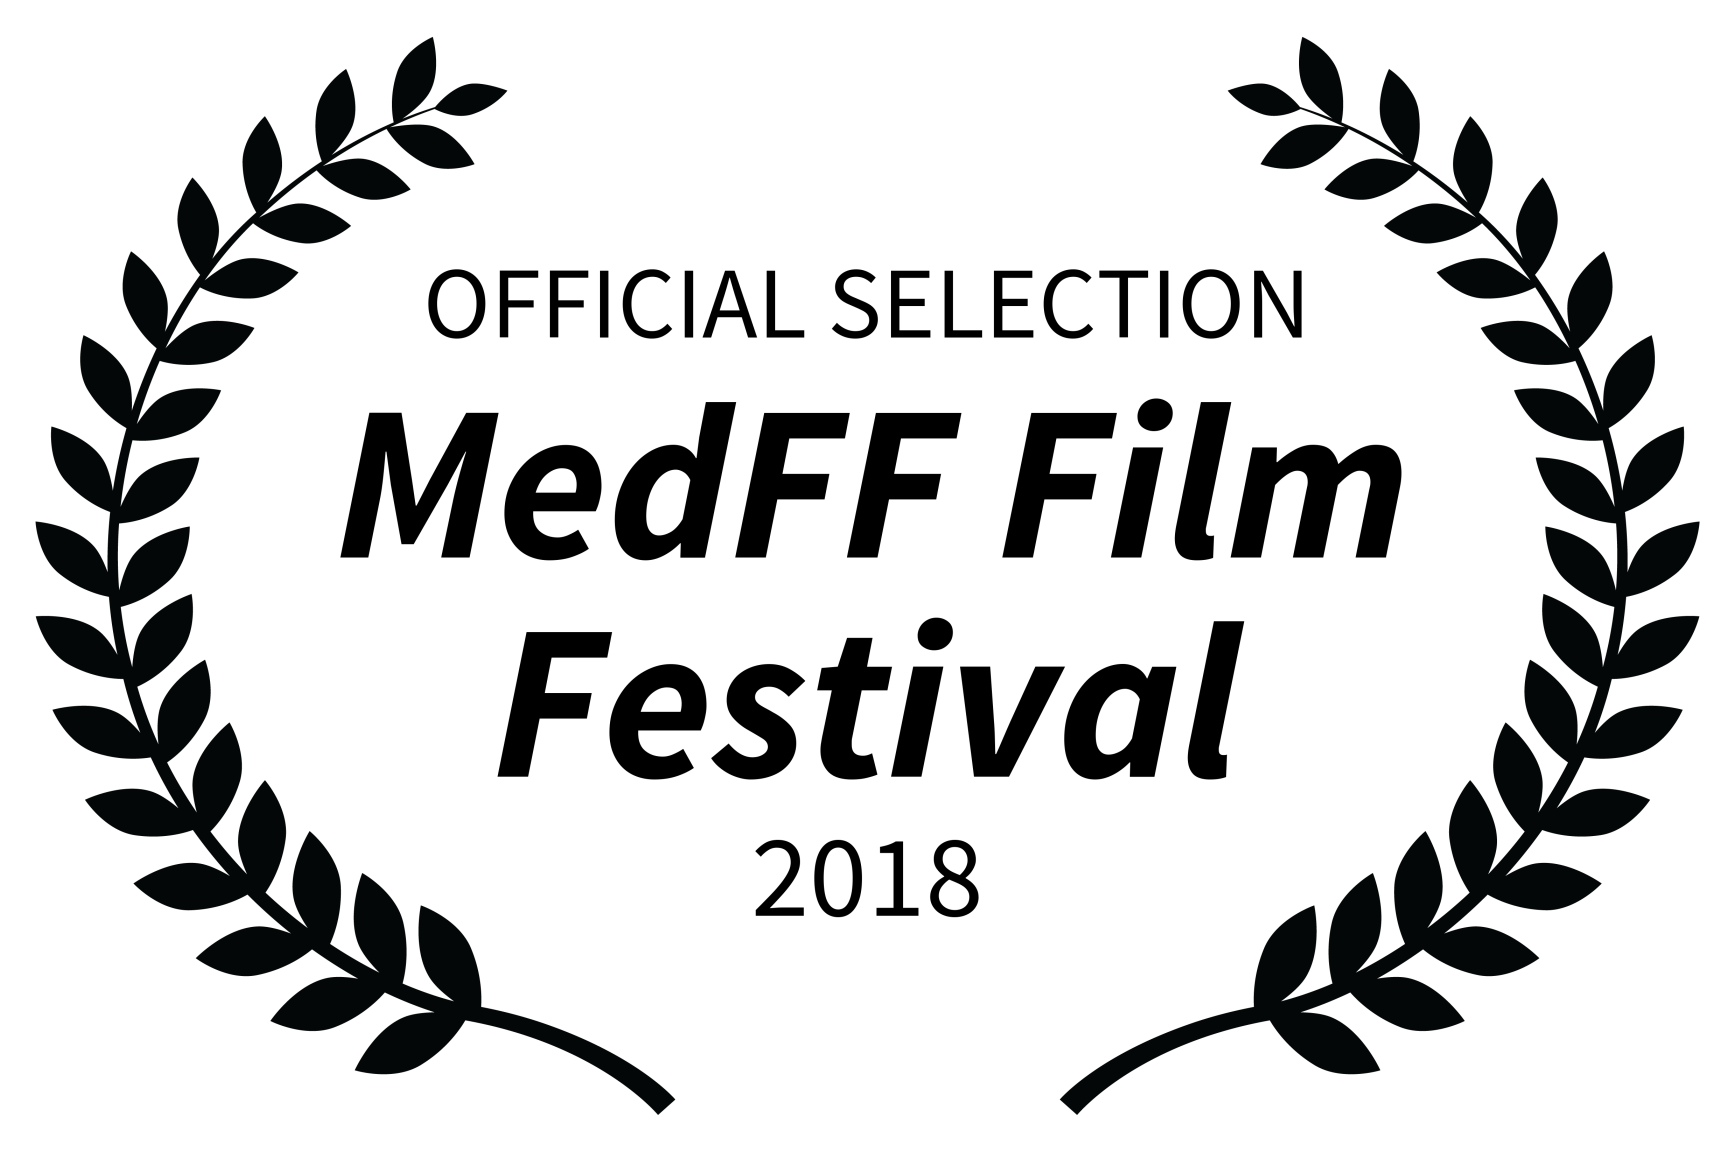 OFFICIAL SELECTION - MedFF Film Festival - 2018